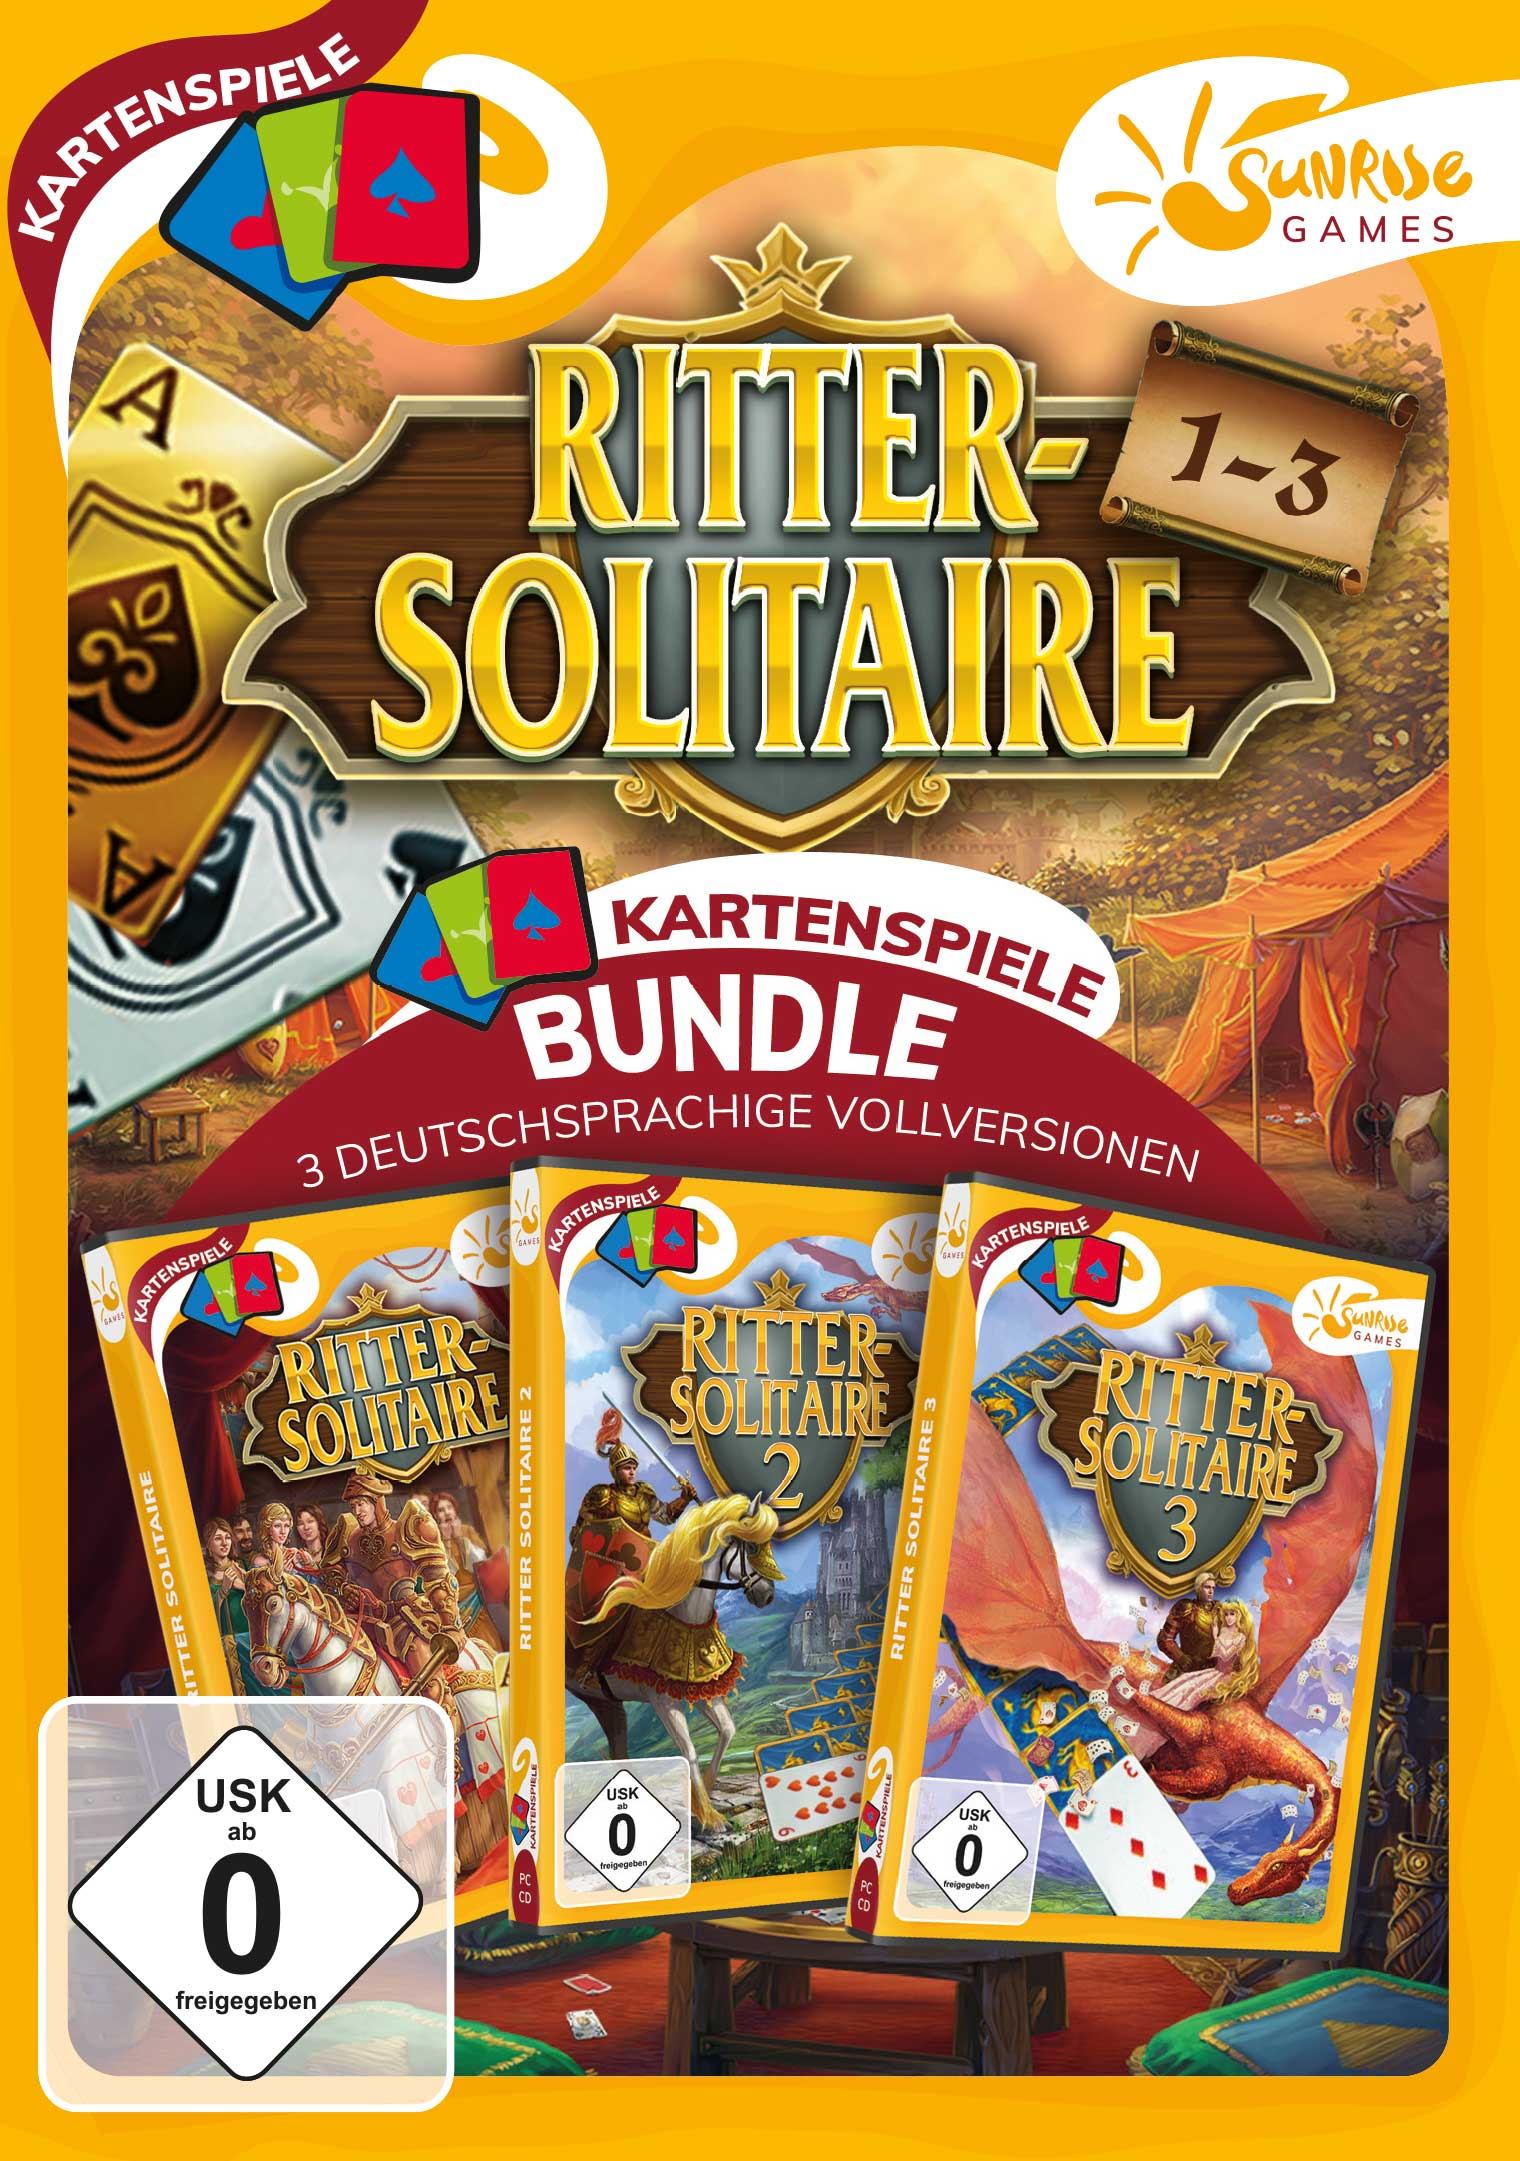 sunrise games  ritter solitaire 13  cdrom  software